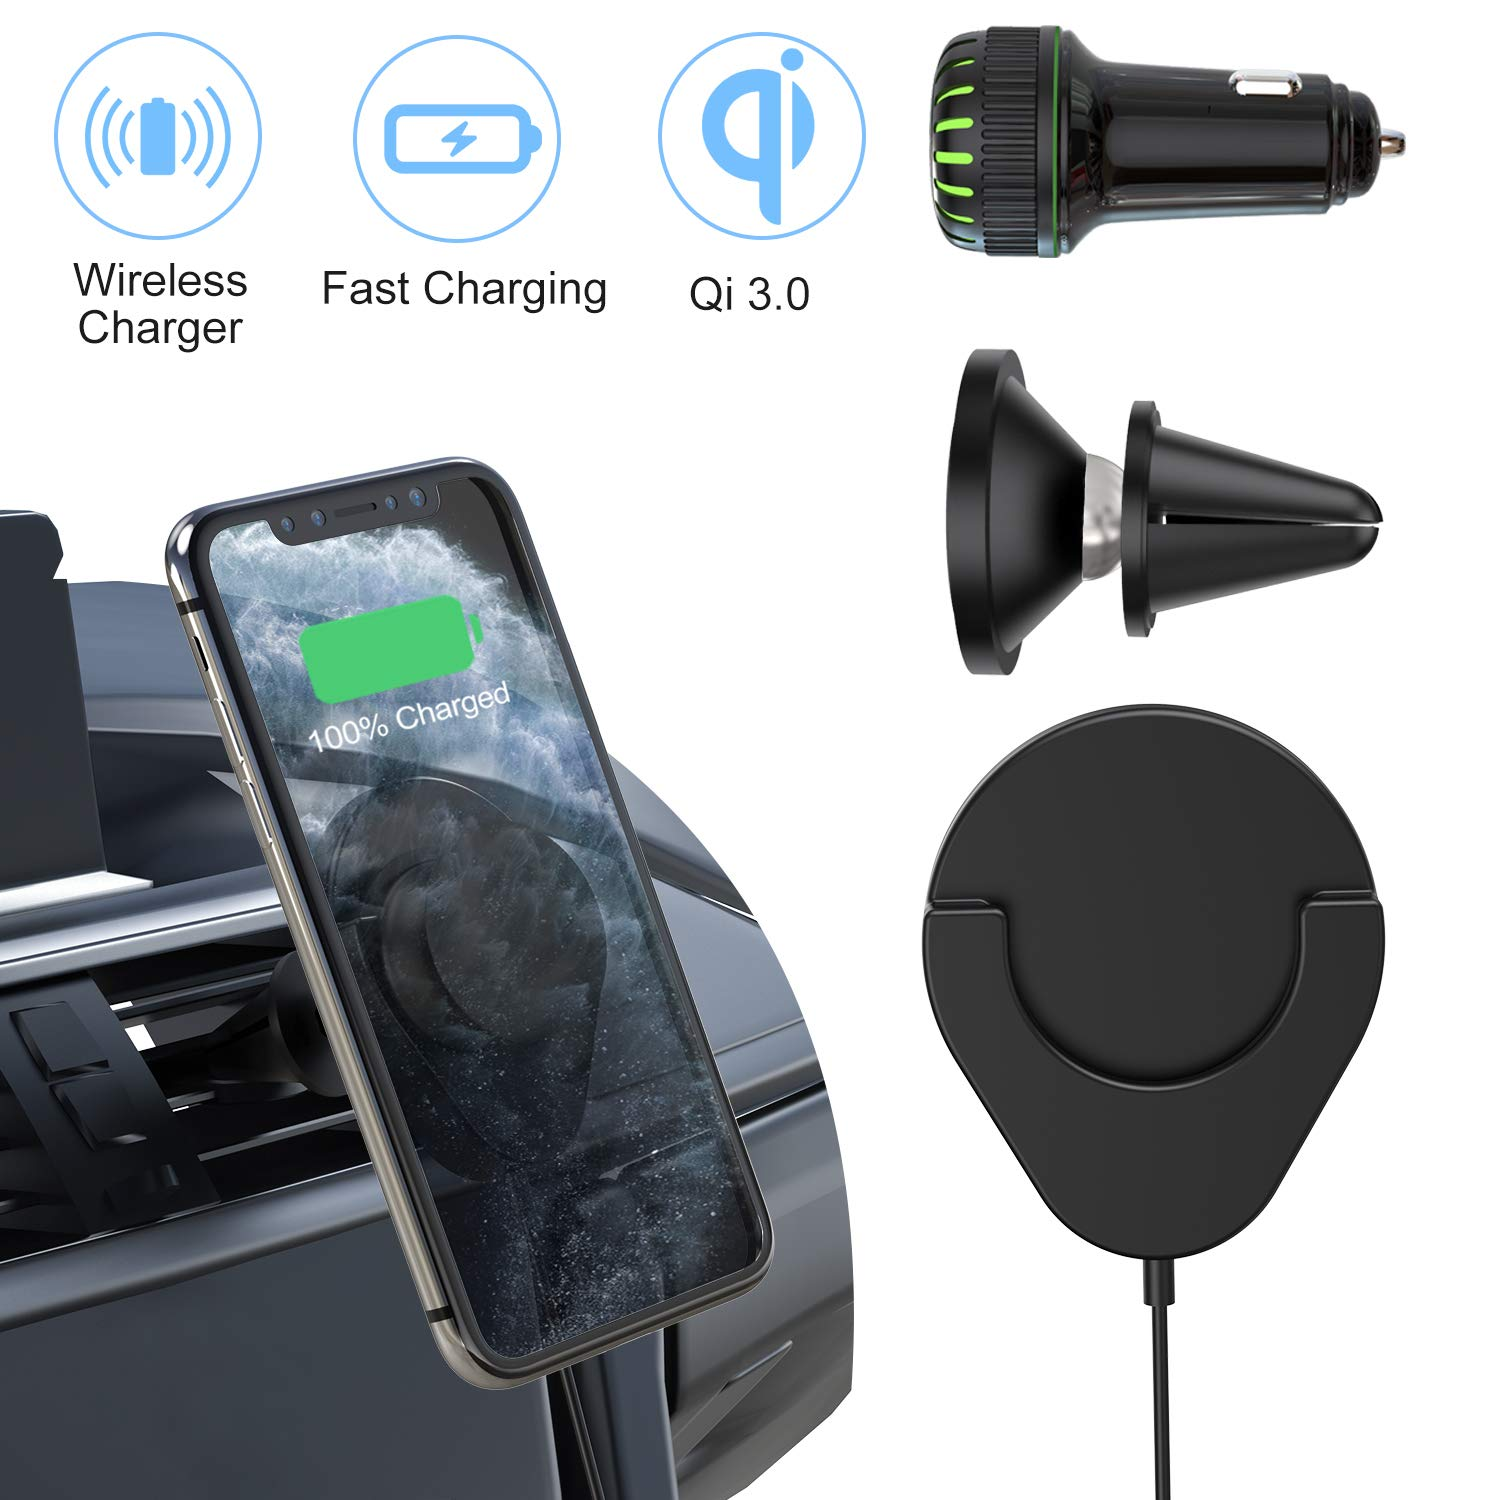 Wireless Grip Charger for Phone Stand, JUBOR 10W Max Fast Wireless Charger + 2 USB Ports QC 3.0 Car Adapter Compatible with iPhone 11 Pro Max/11 Pro/11/XS Max/XR/XS/X/8, Galaxy Note 10/S10/S9/S8